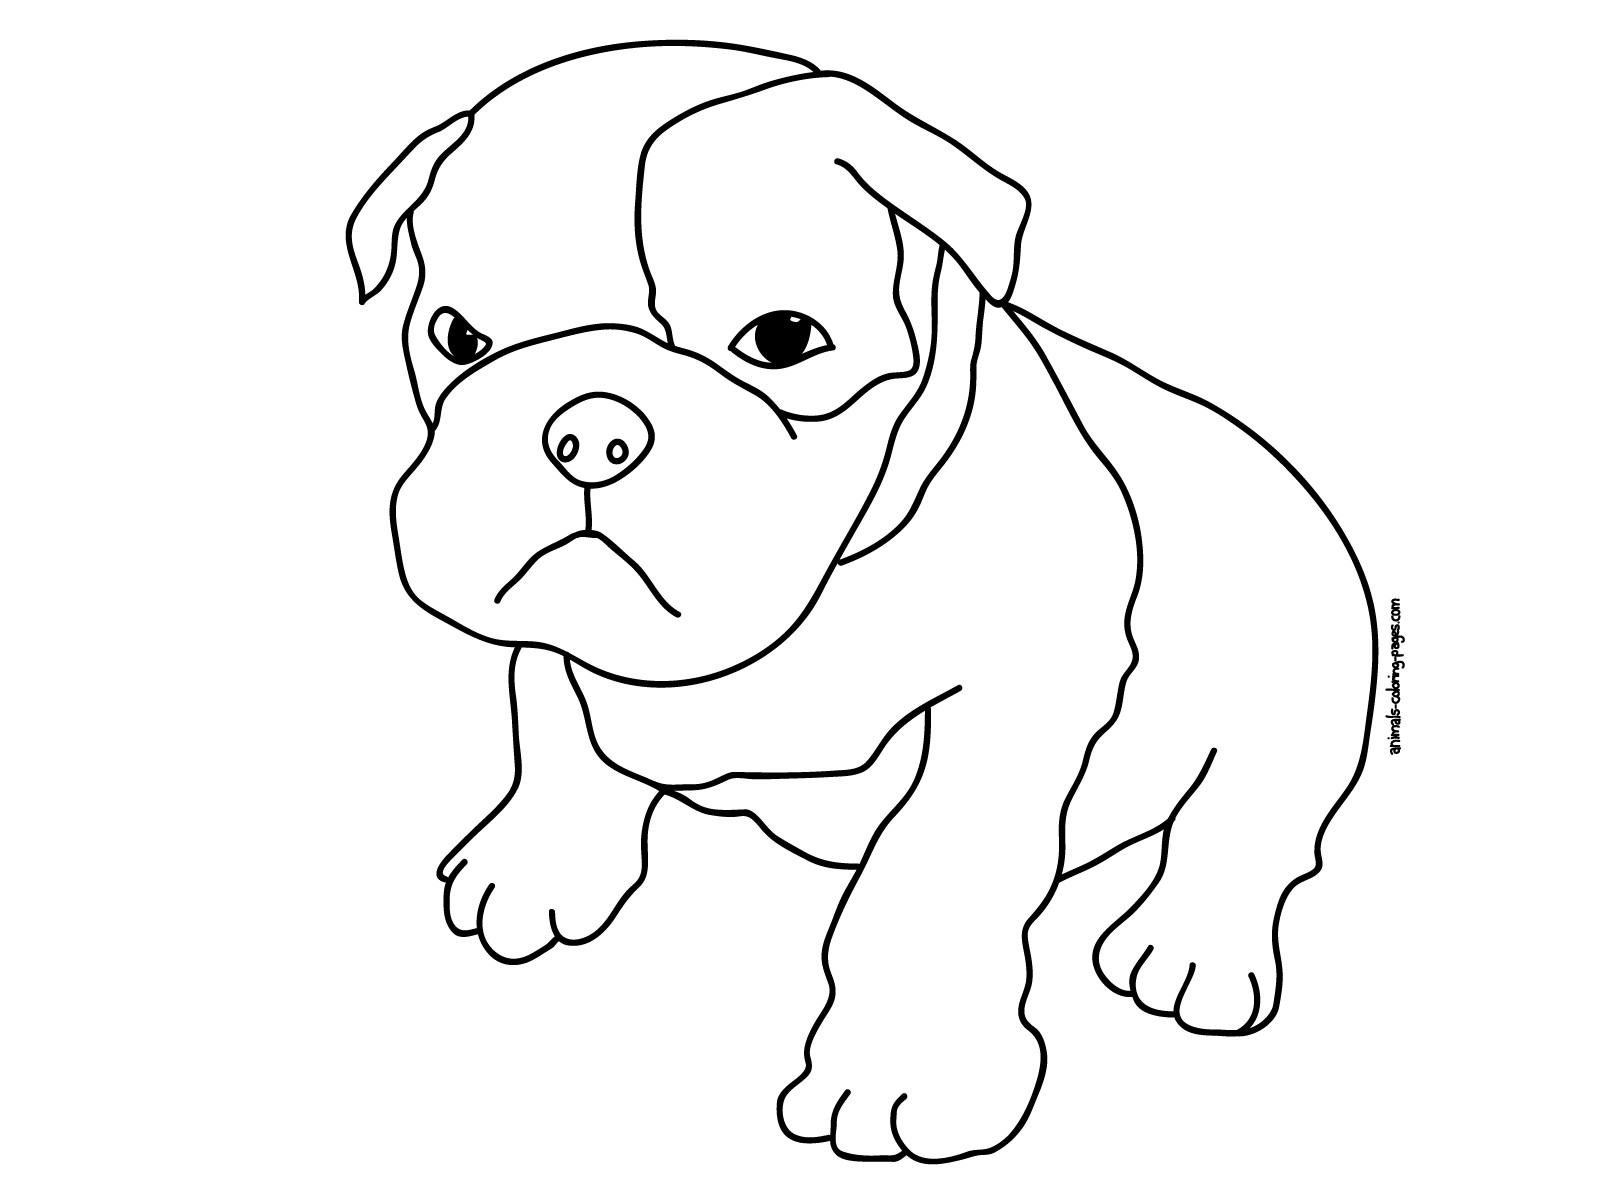 Best ideas about Free Coloring Pages Animals To Print . Save or Pin Typical Print Coloring Pages Animals s Free Printable Now.